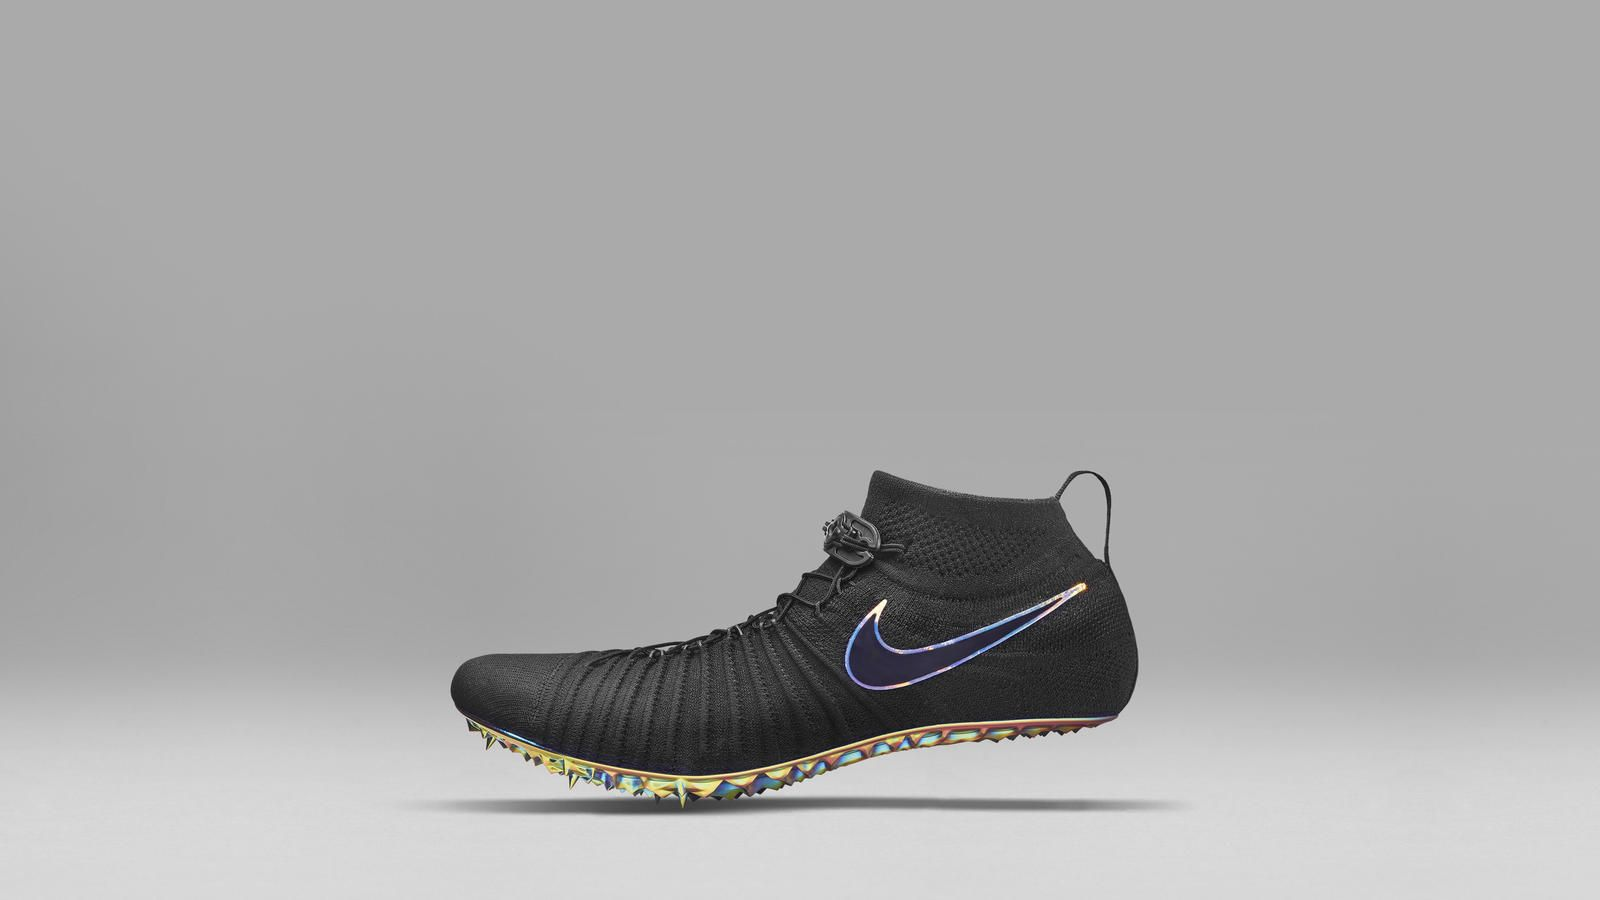 9b9a35b6479 Nike News - At Nike the Future is Faster